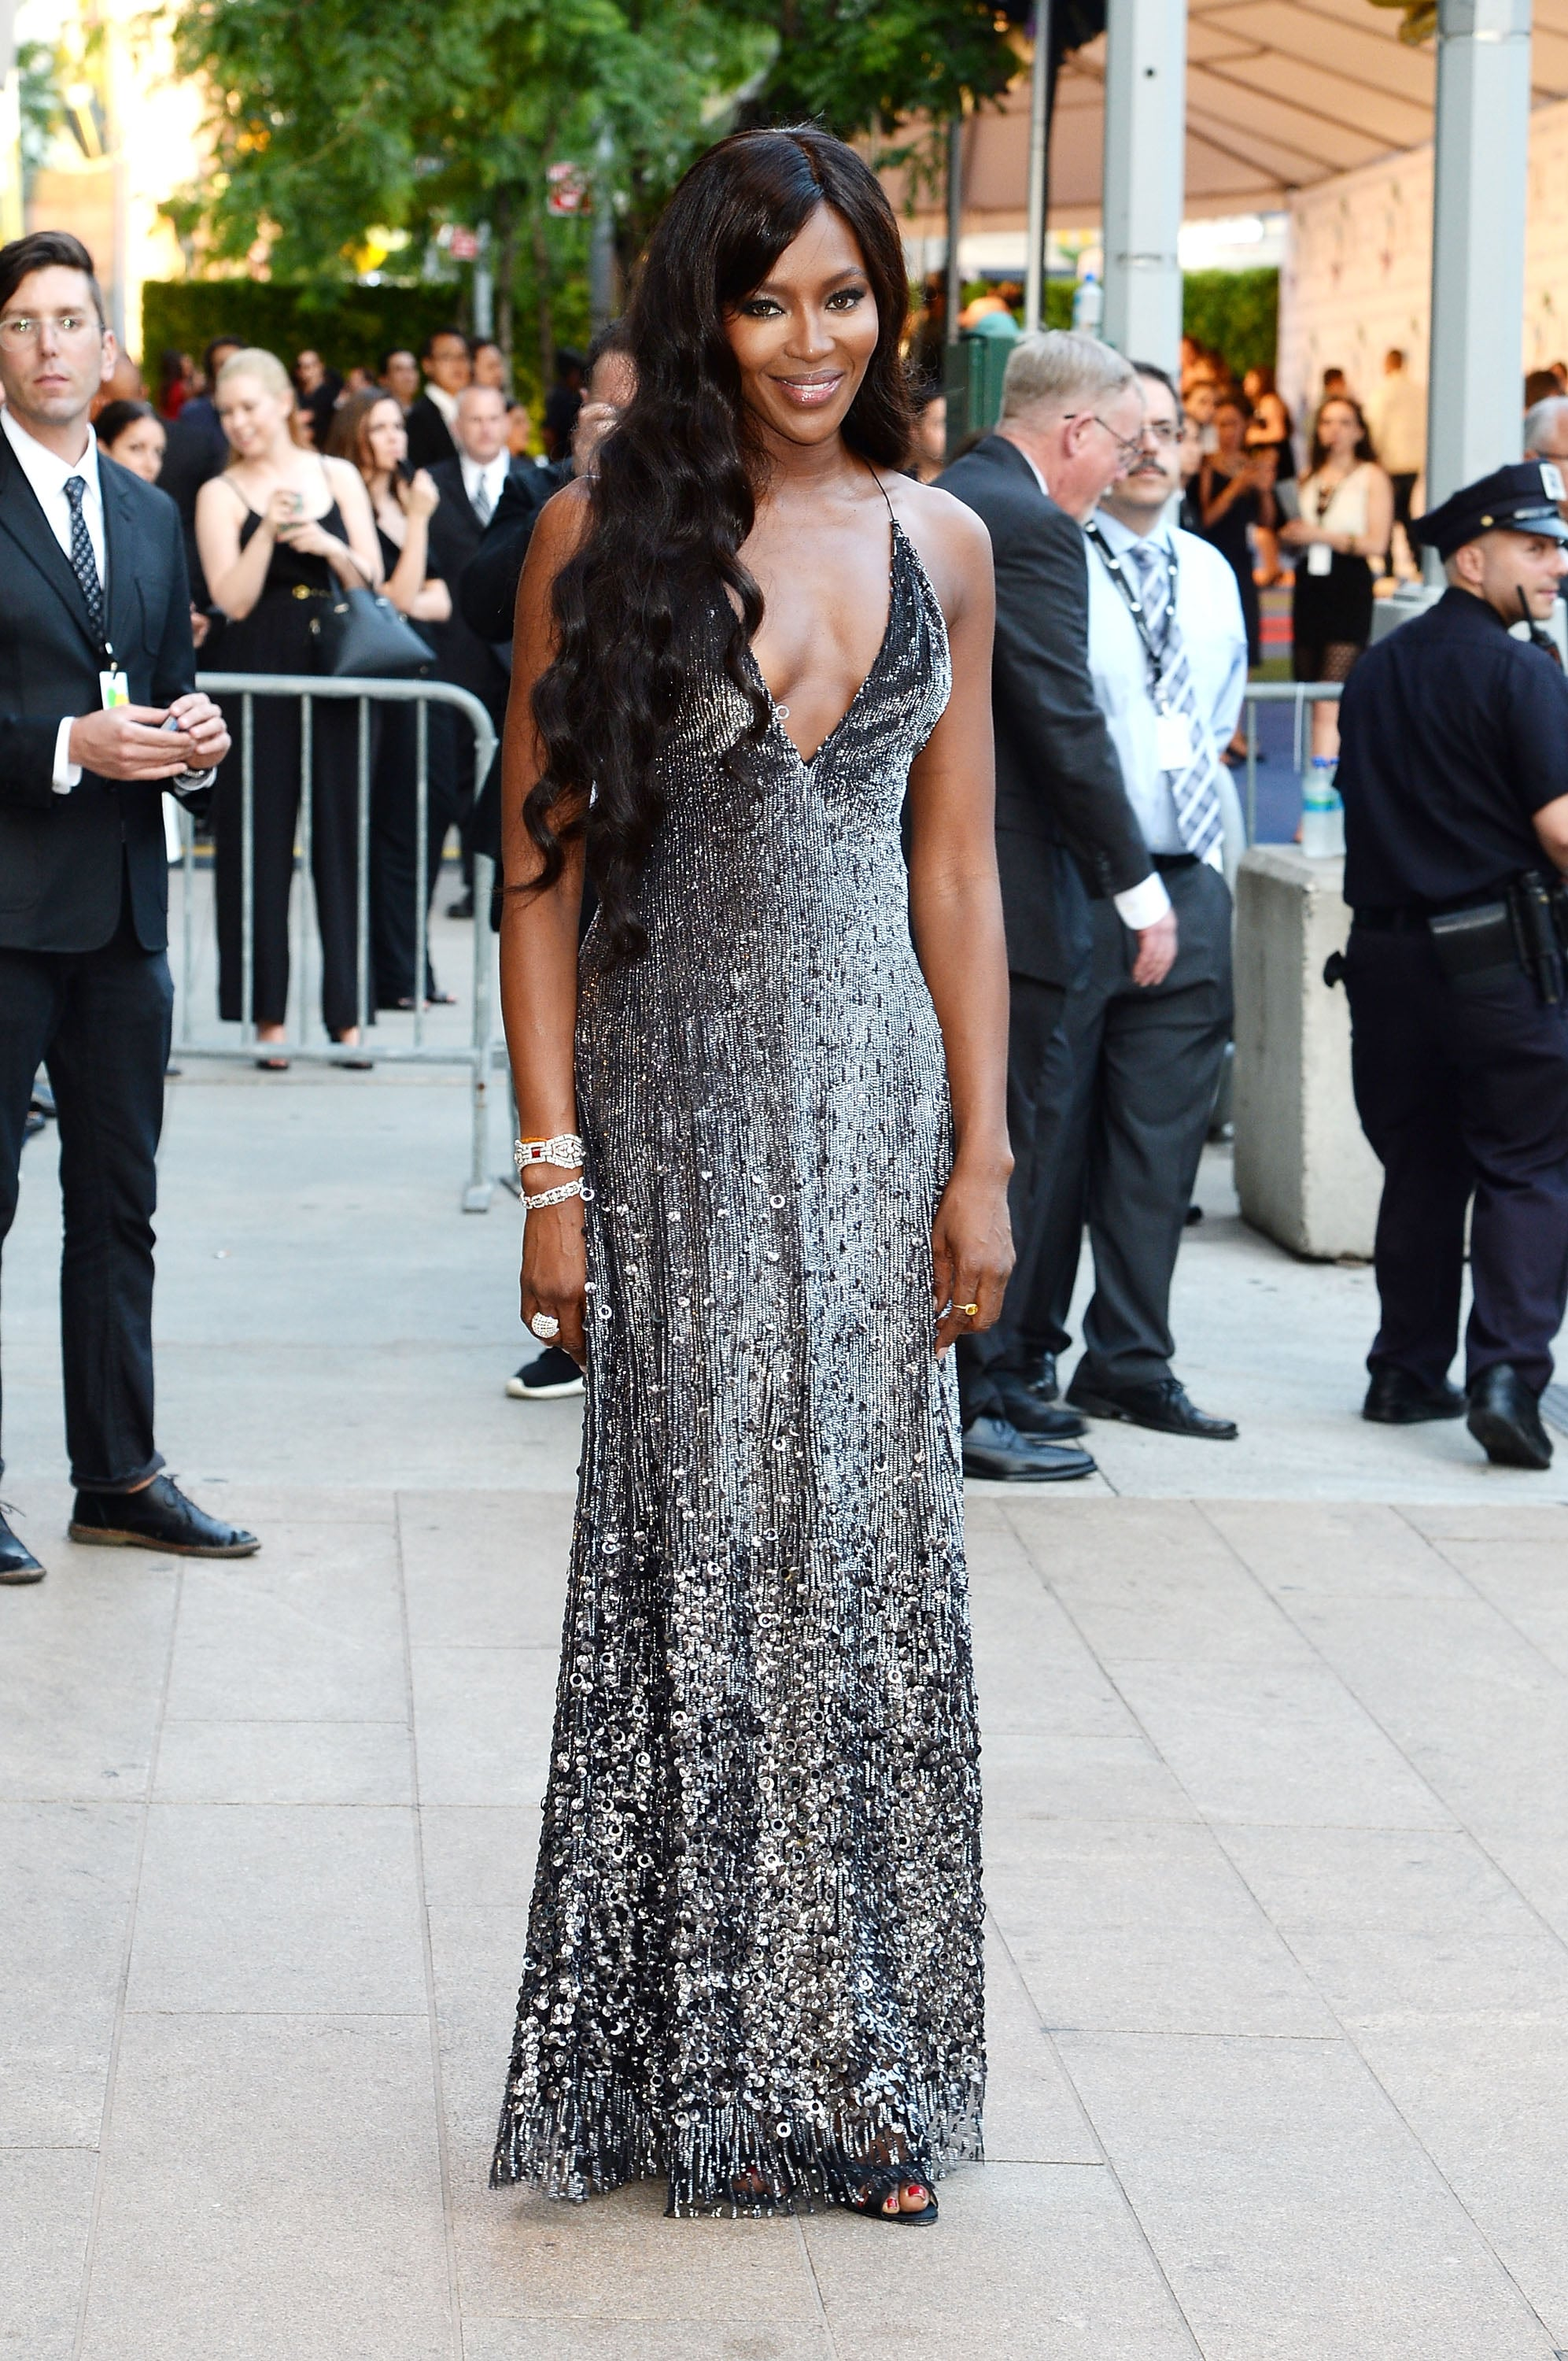 Naomi Campbell set off a photographer frenzy in her sequined gown.